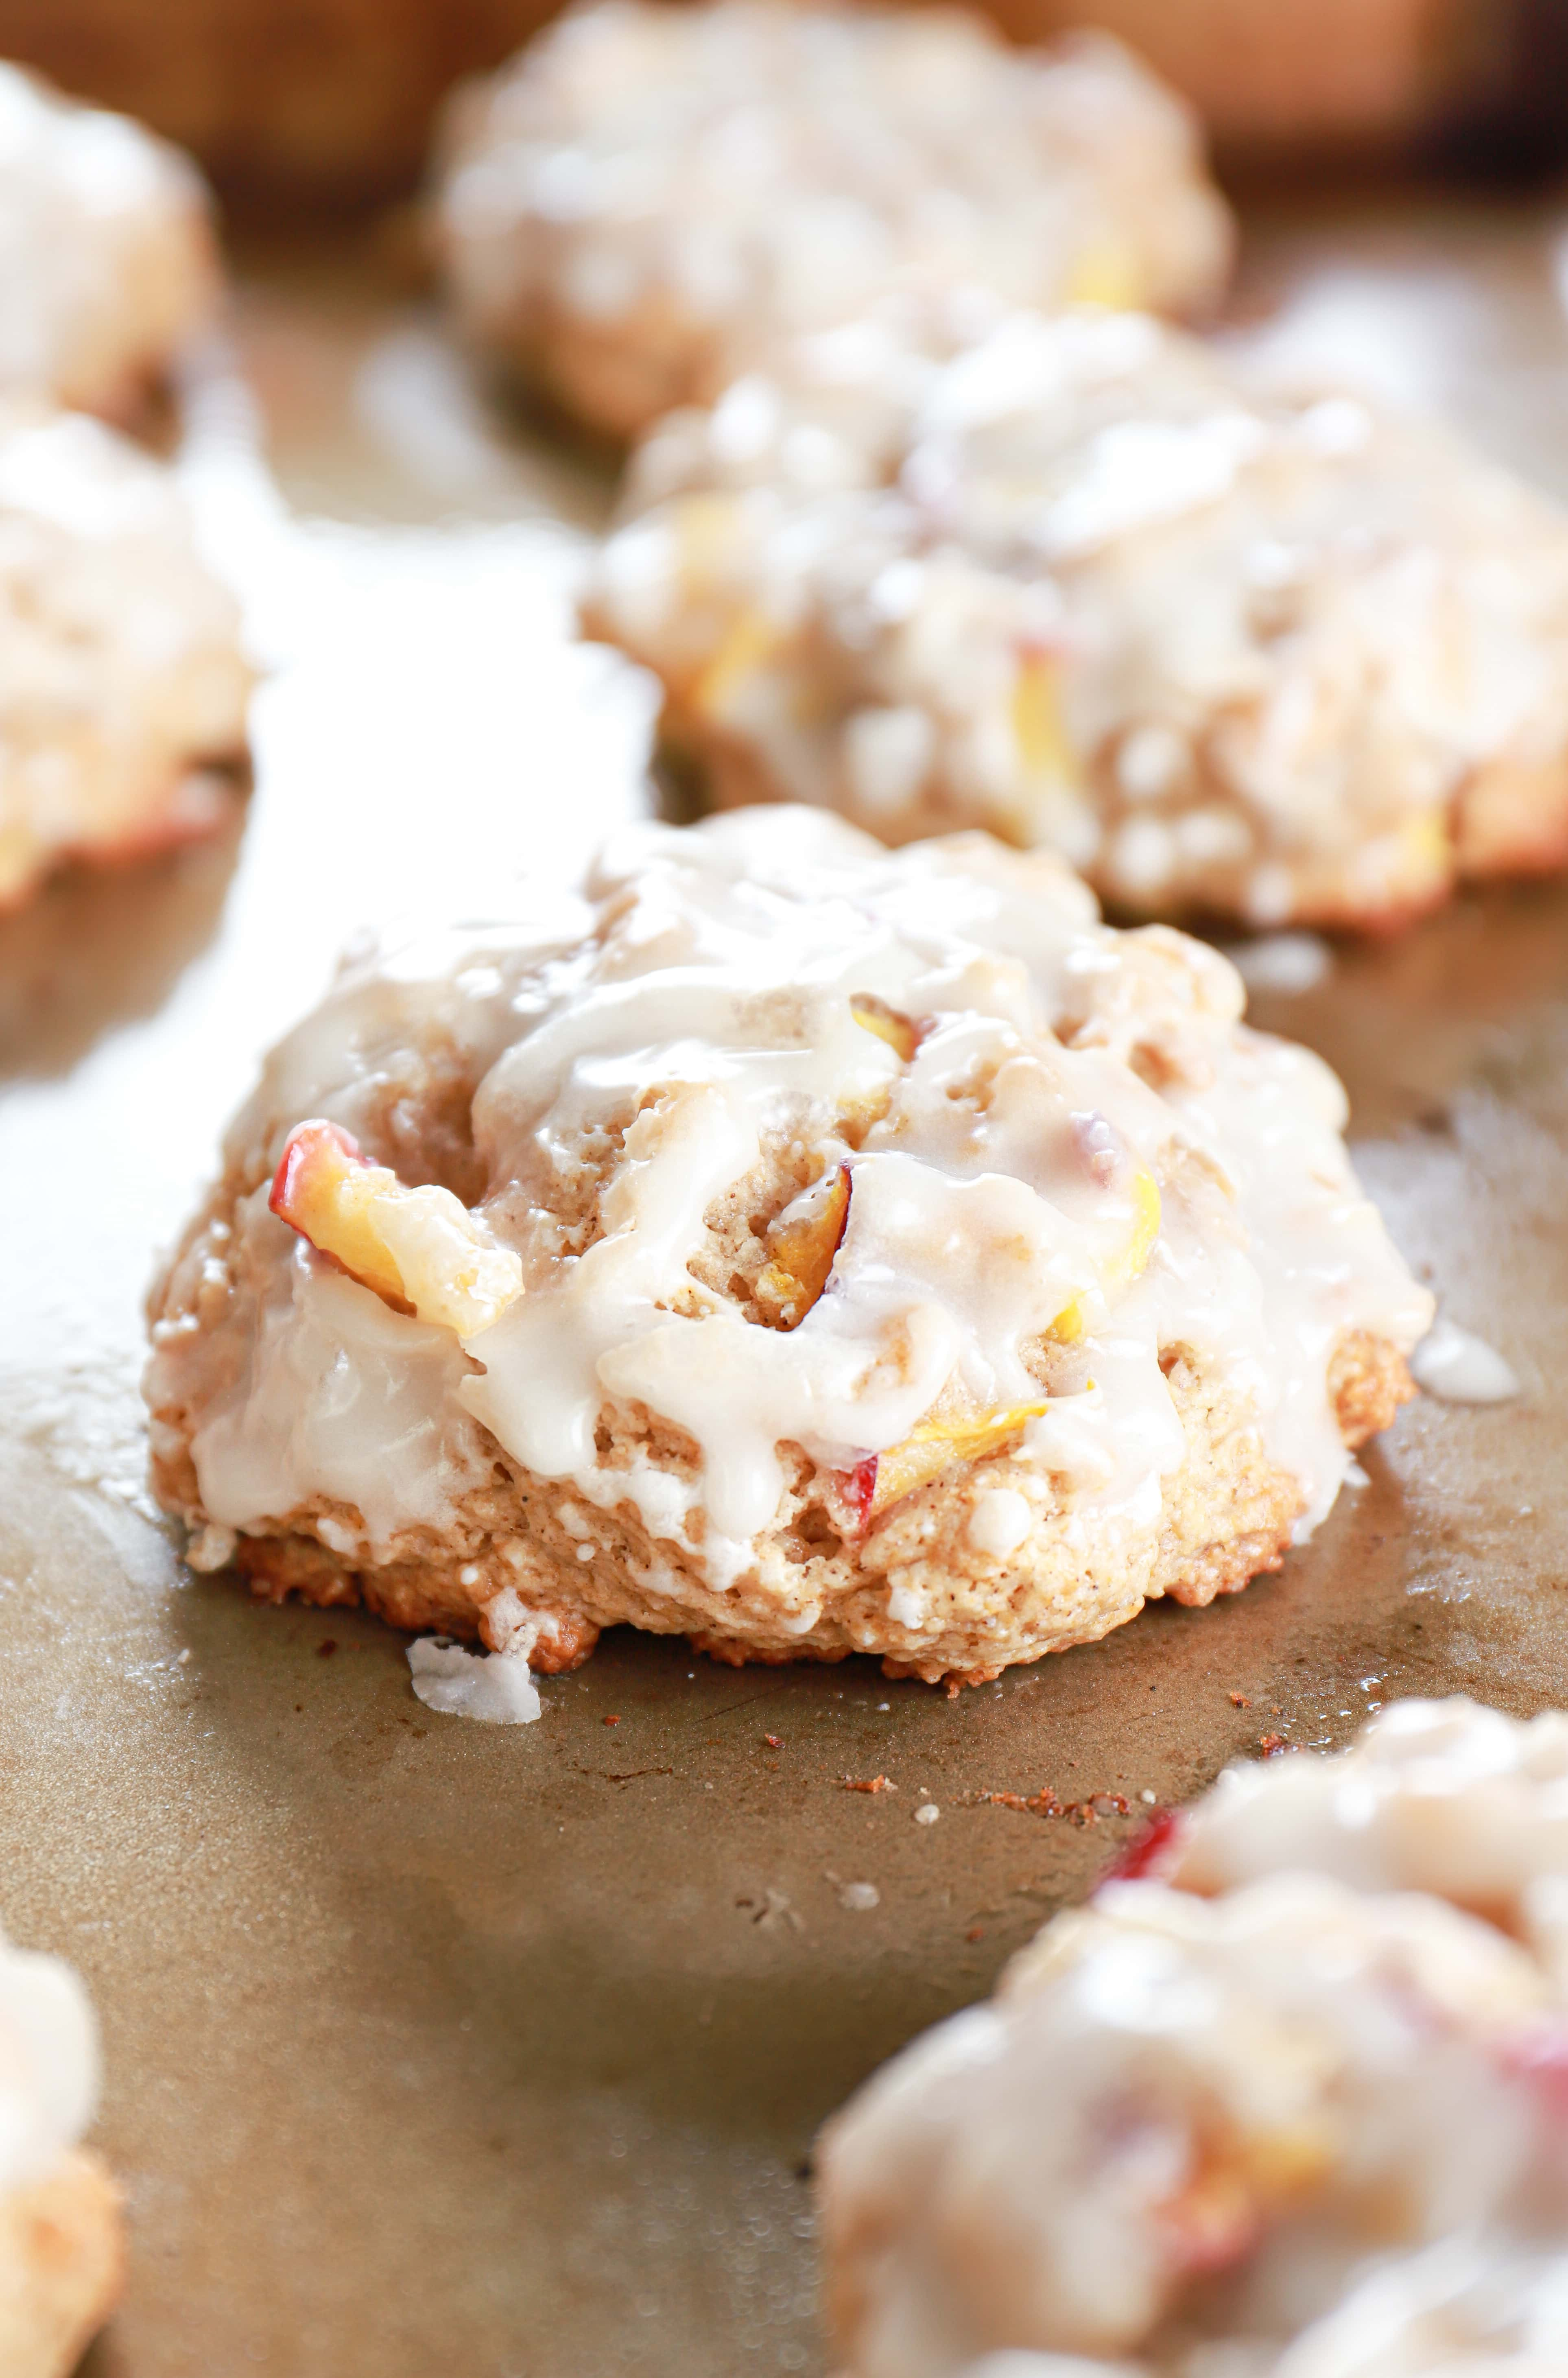 Baked peach fritters on a cookie sheet.